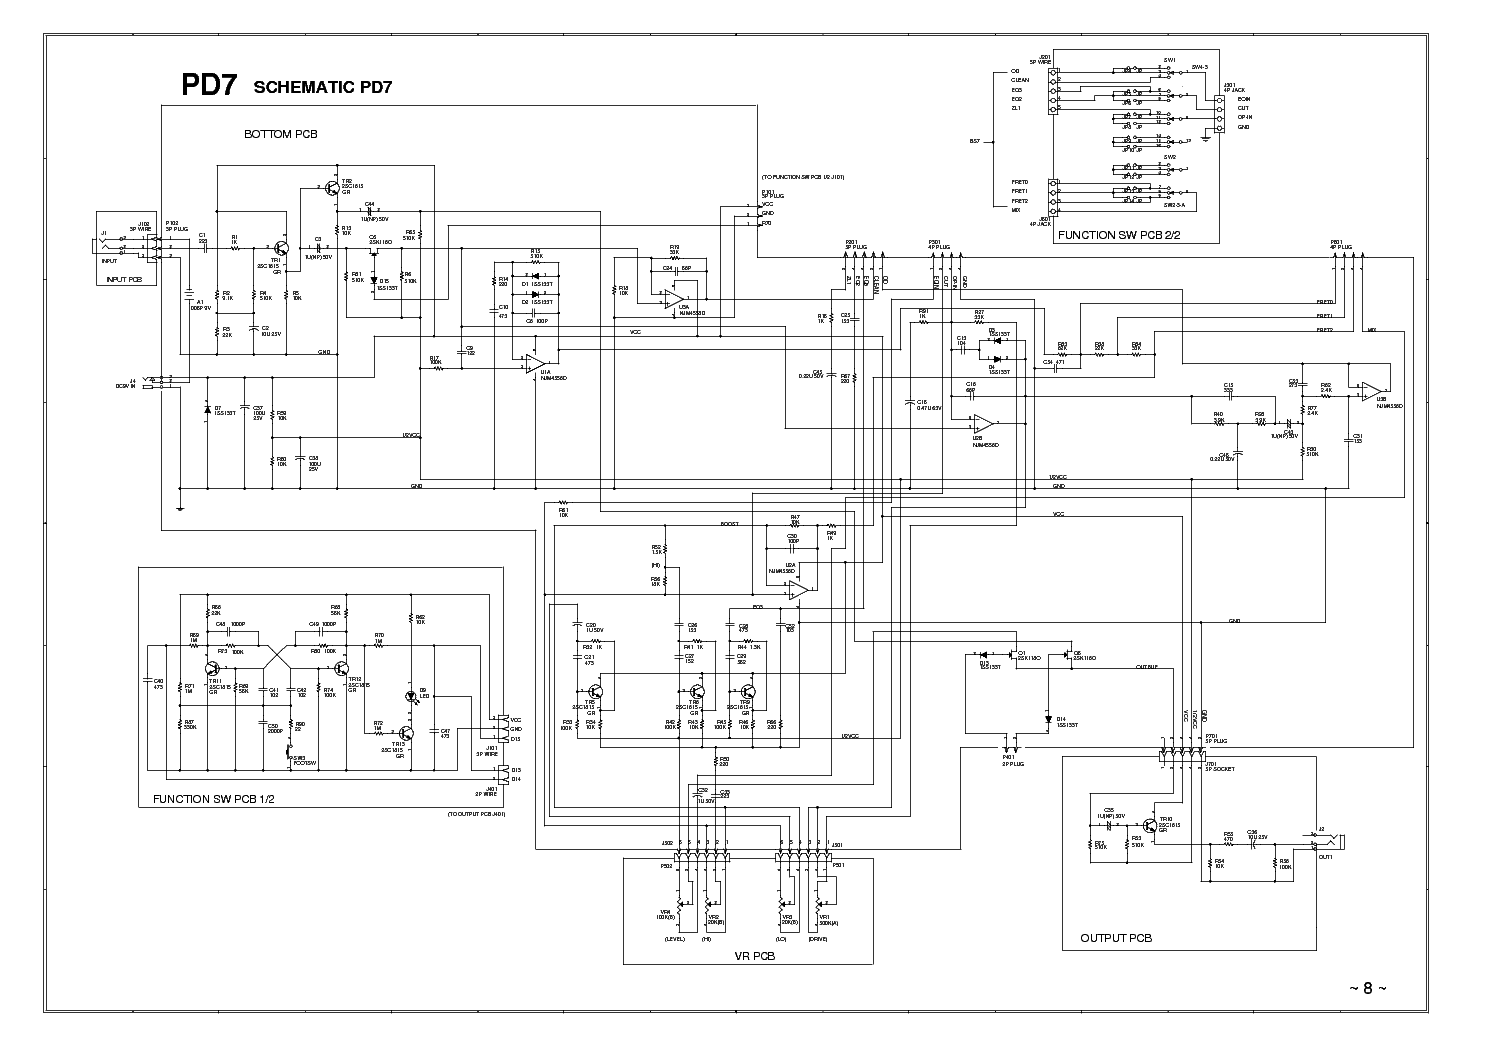 Ibanez Fz7 Schematic Smart Wiring Diagrams Grg Diagram Service Manual Download Schematics Eeprom Repair Info Rh Elektrotanya Com Gio